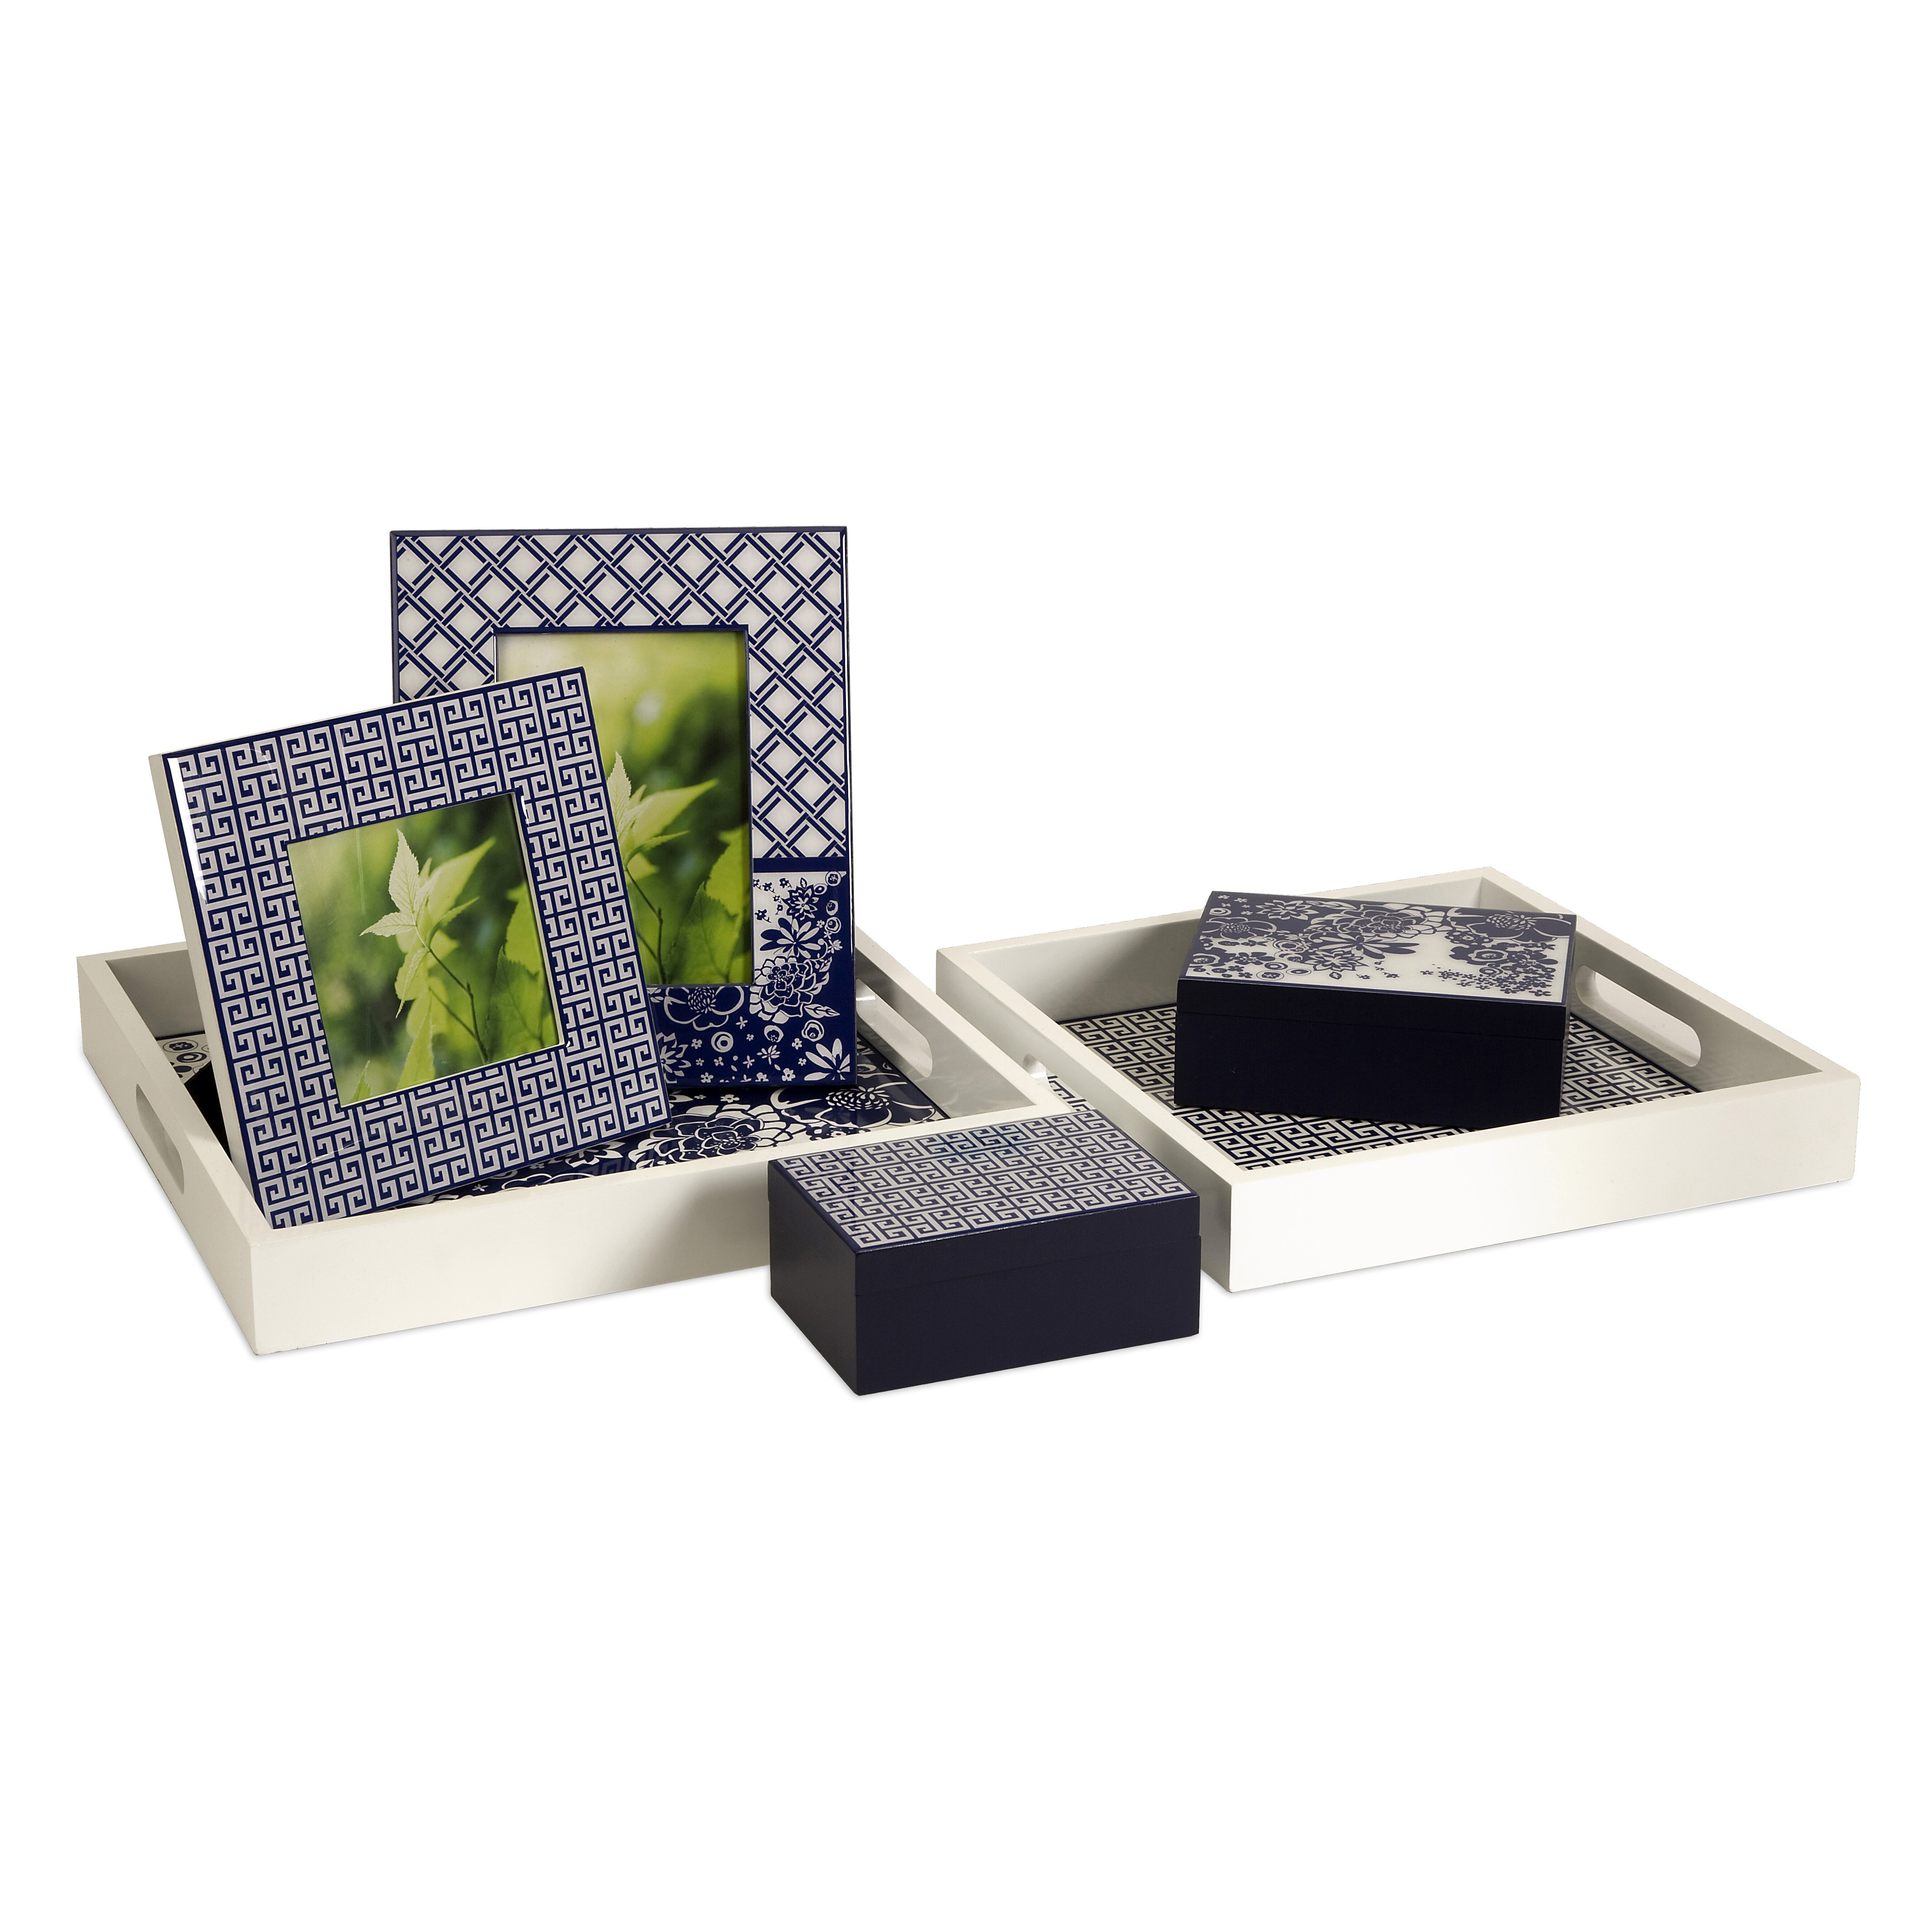 Missy Desk Accessories Set of 6